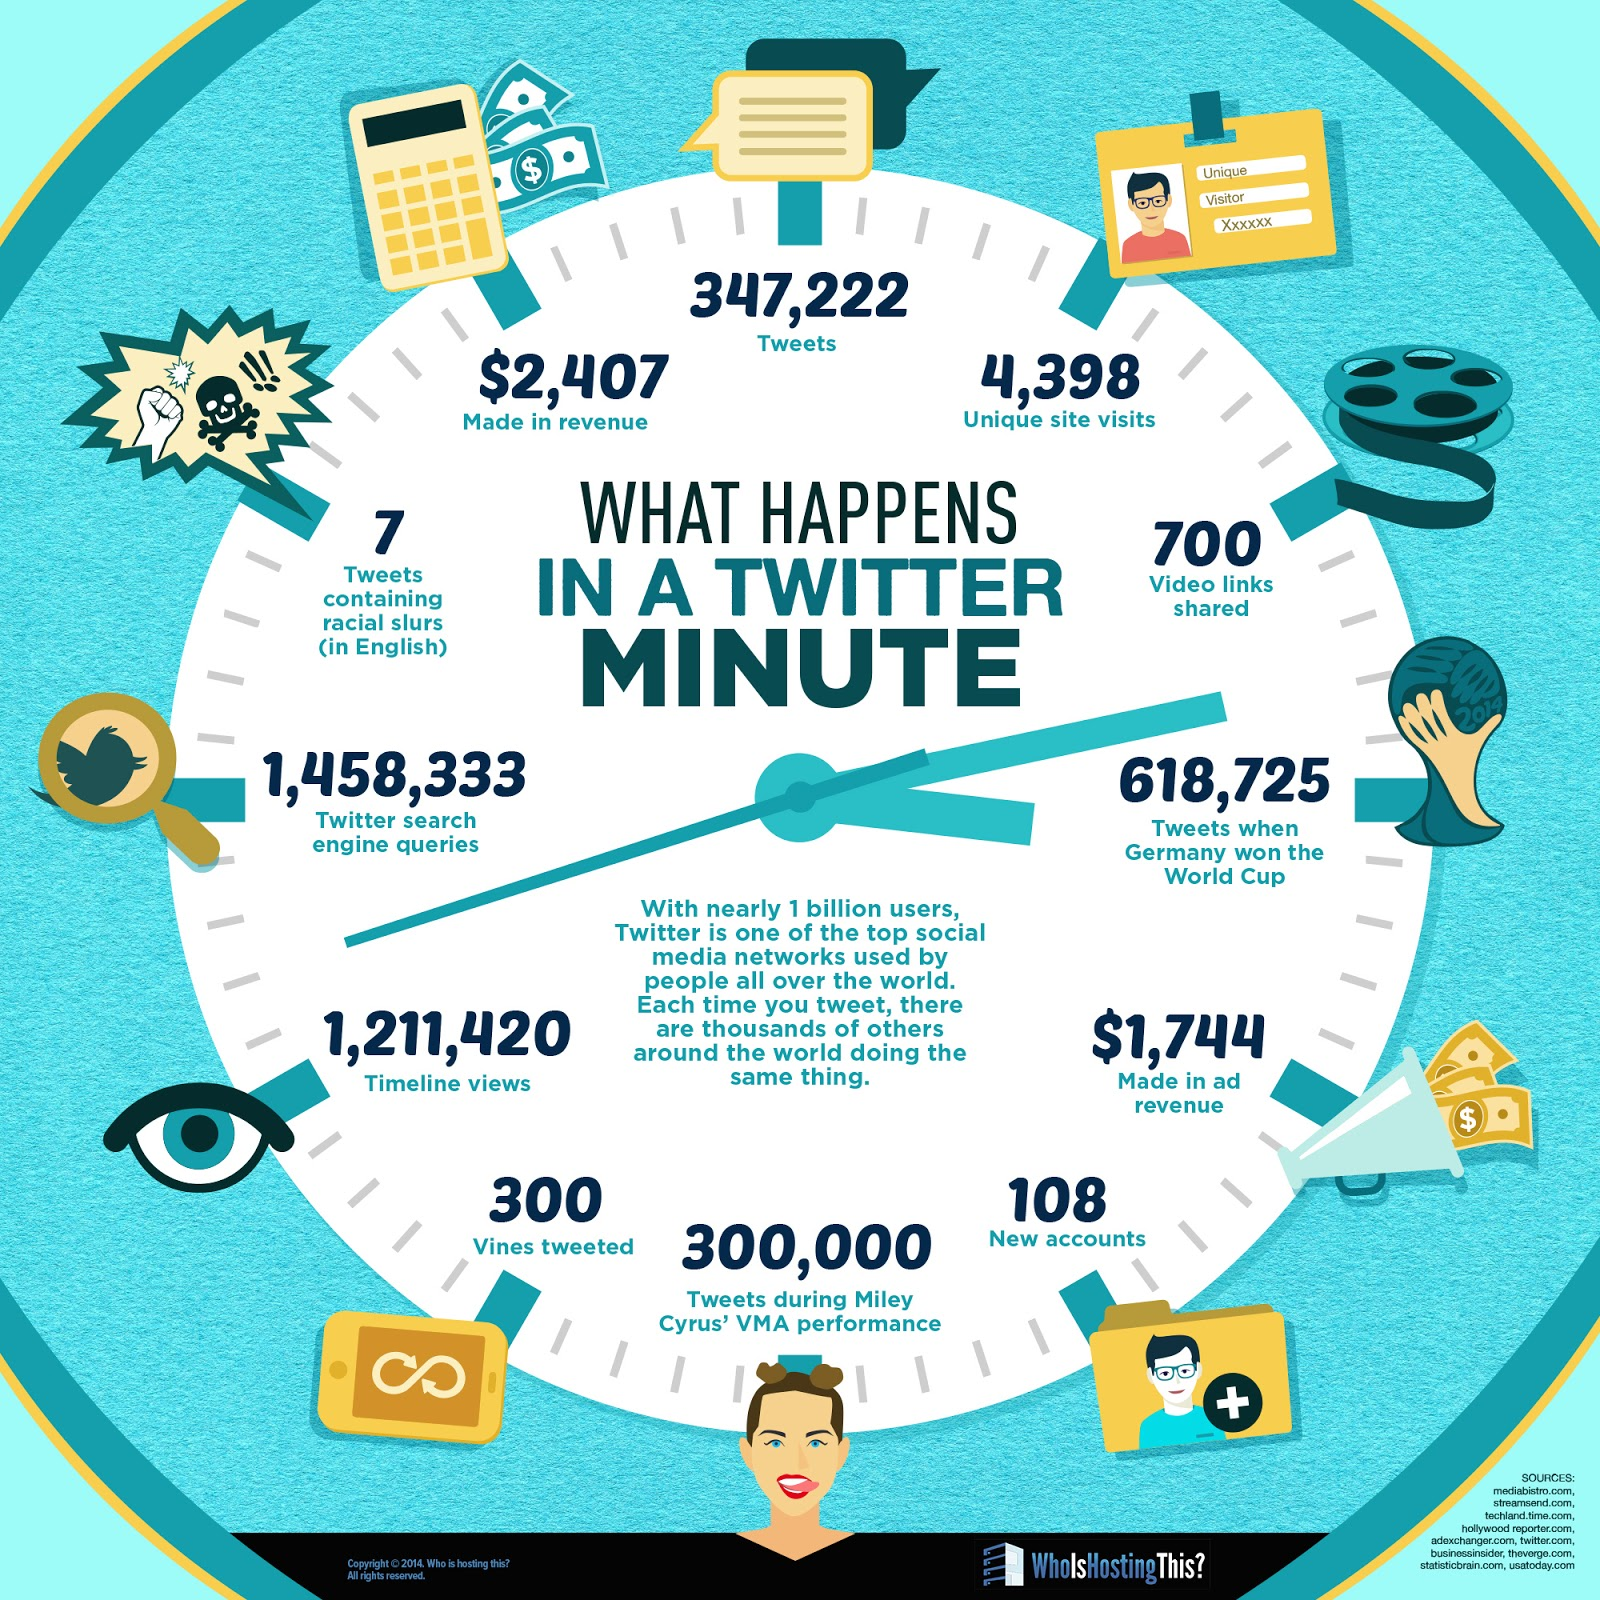 Some increadible facts and stats on What Happens in Just ONE Minute on Twitter - #infographic #socialmedia